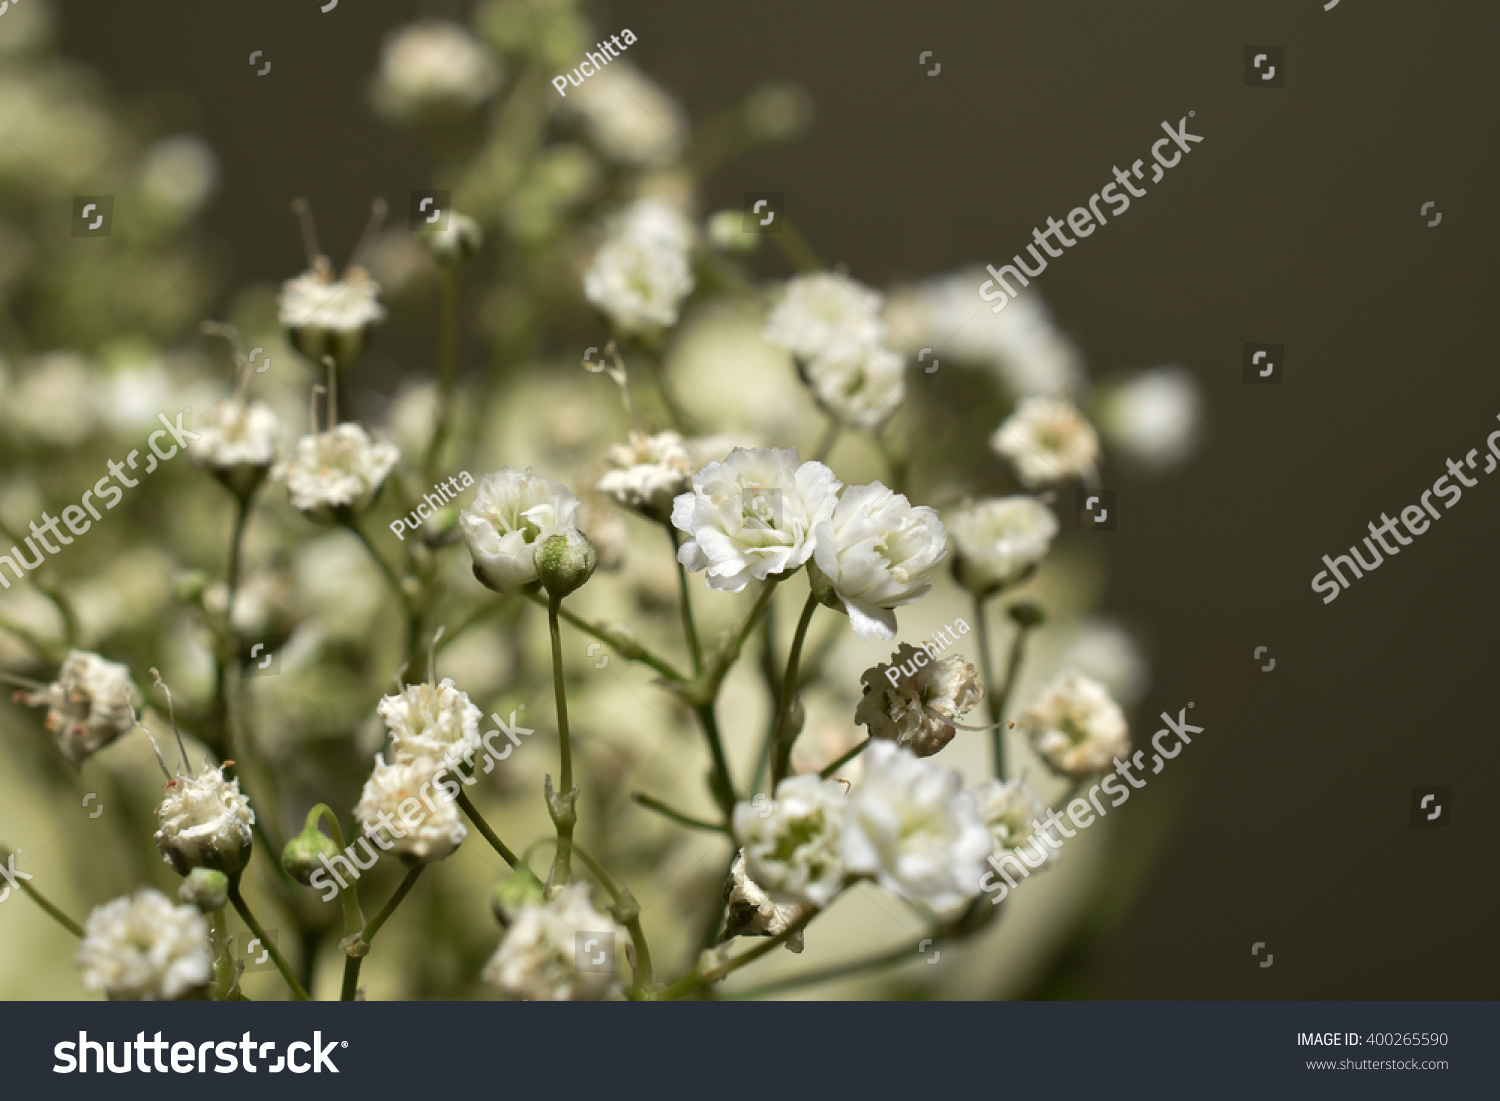 Small White Flowers Bouquet Flowers Stock Photo (Royalty Free ...